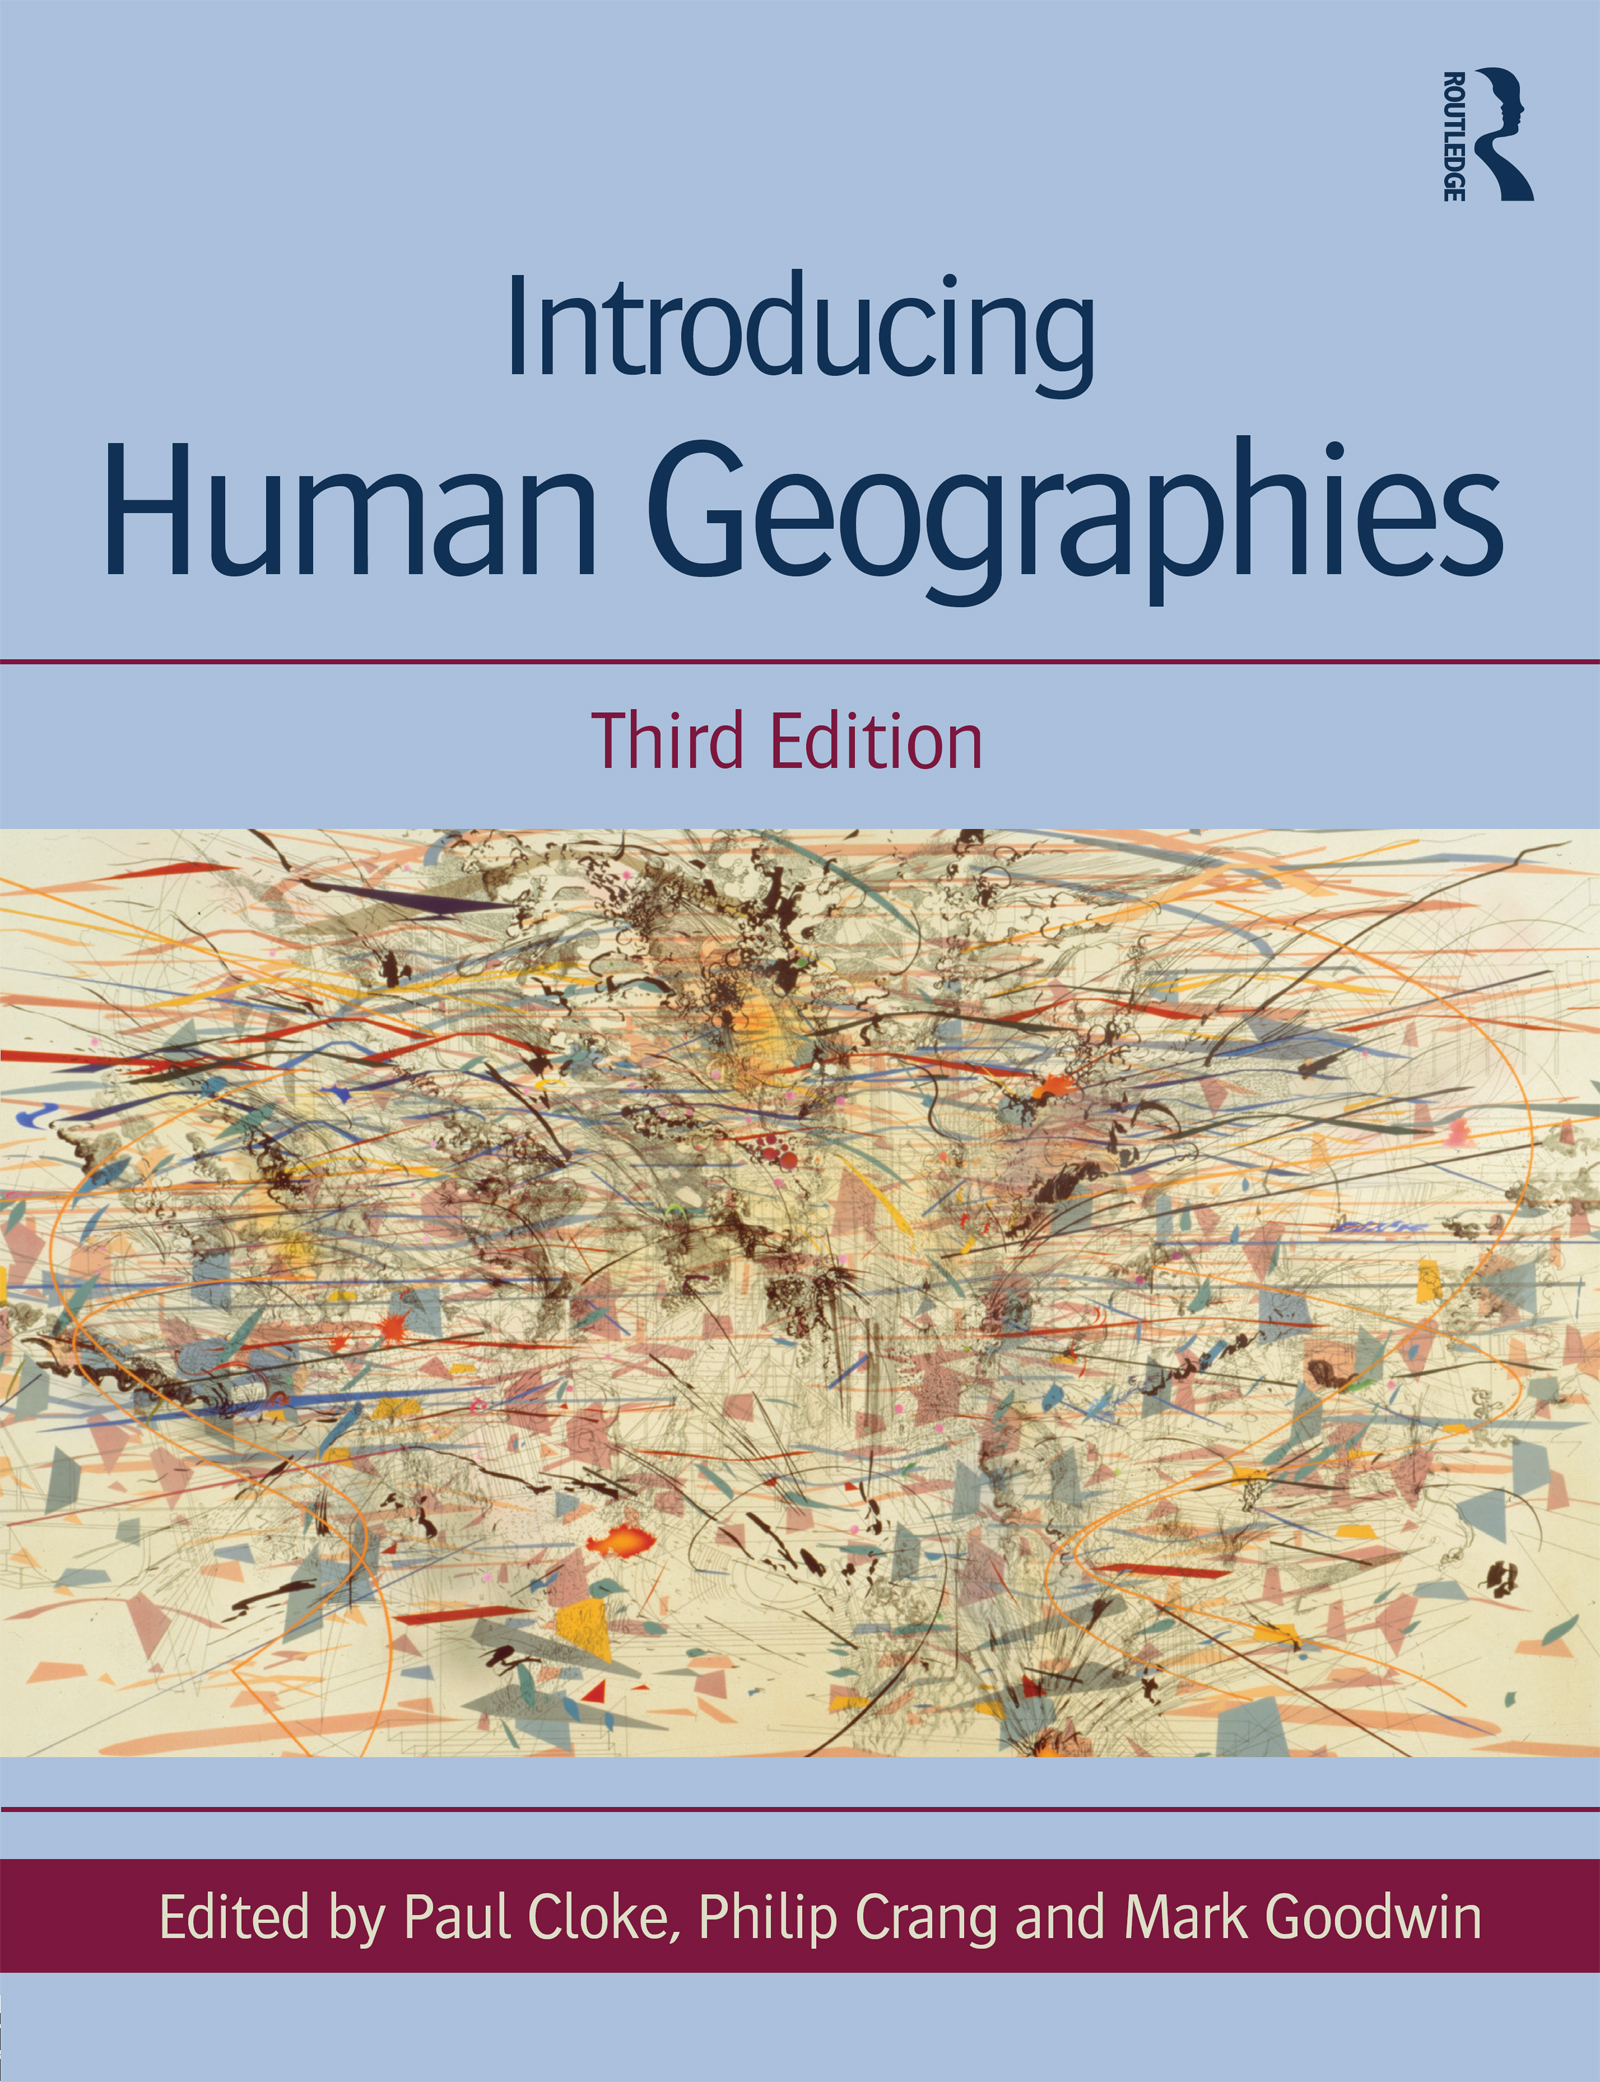 Introducing Human Geographies, Third Edition: 3rd Edition (Paperback) book cover